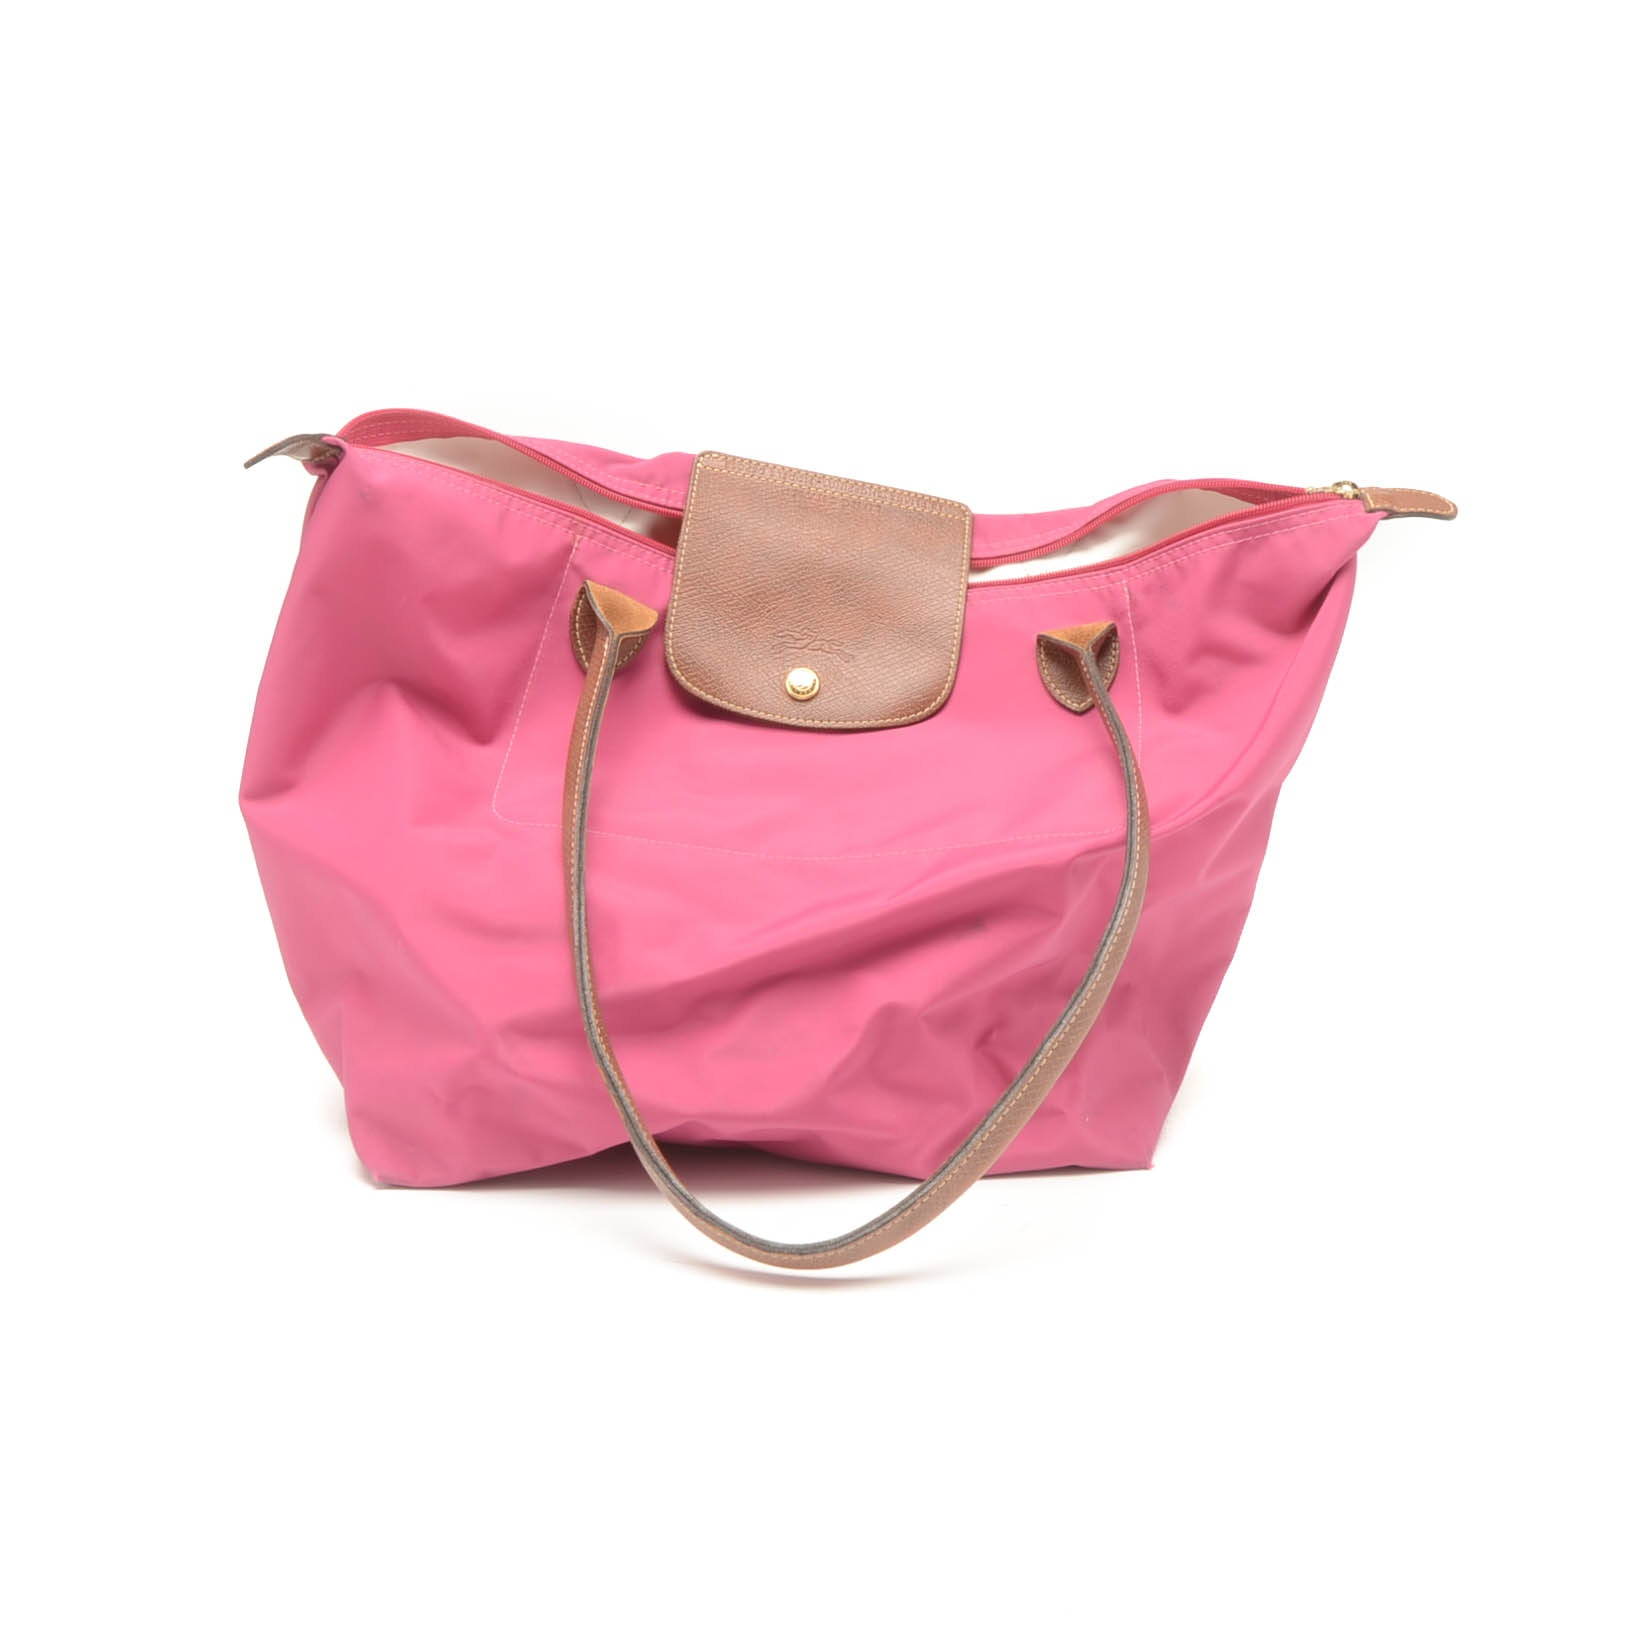 Longchamp Le Pliage Pink Nylon and Leather Tote